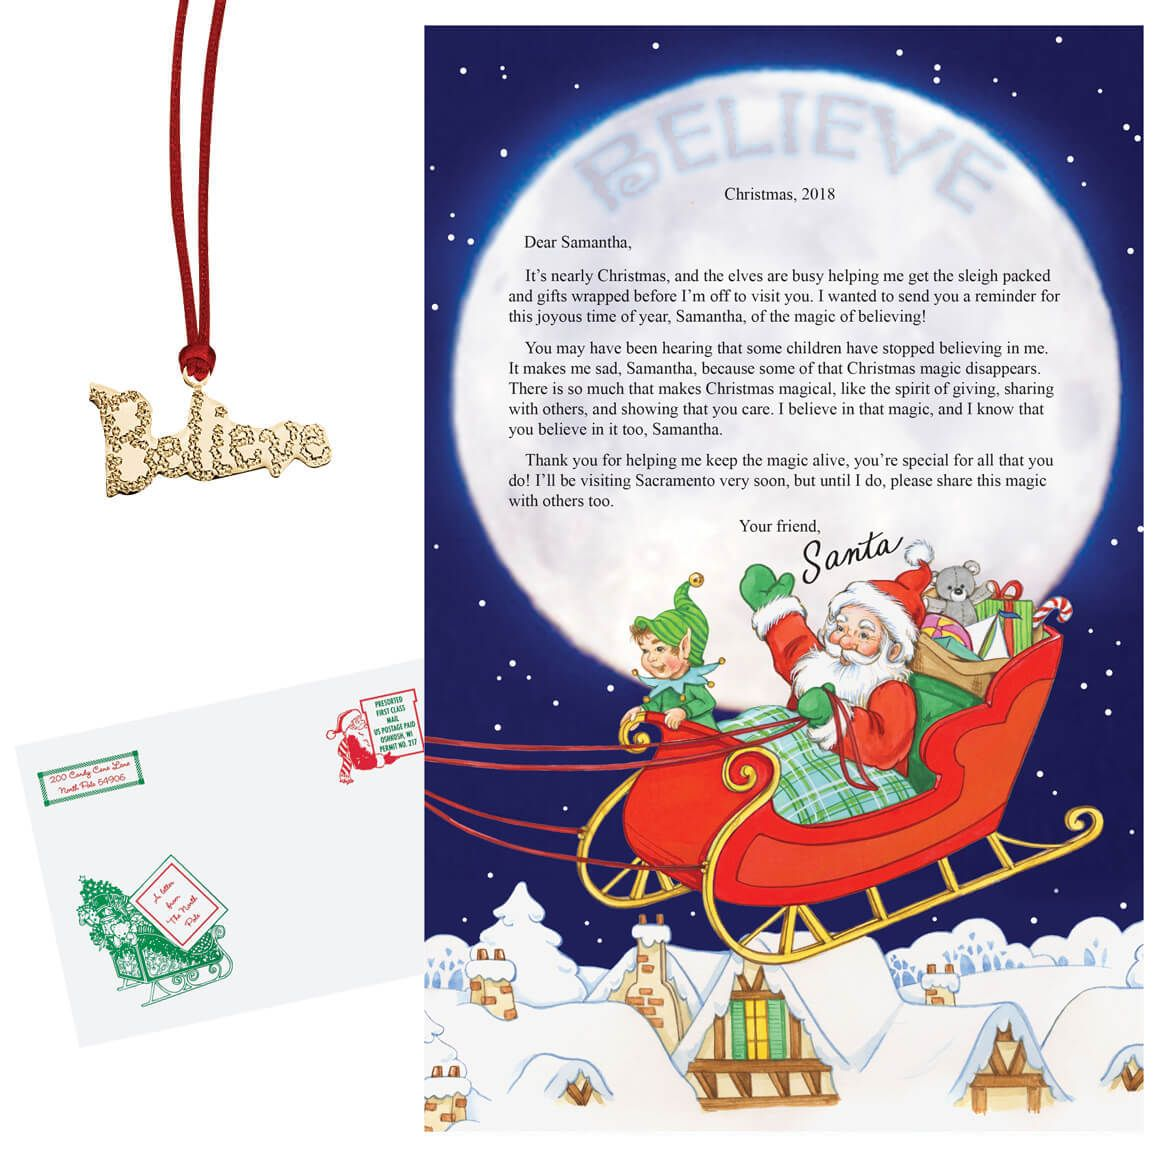 Personalized Letter From Santa To Child Santa letter